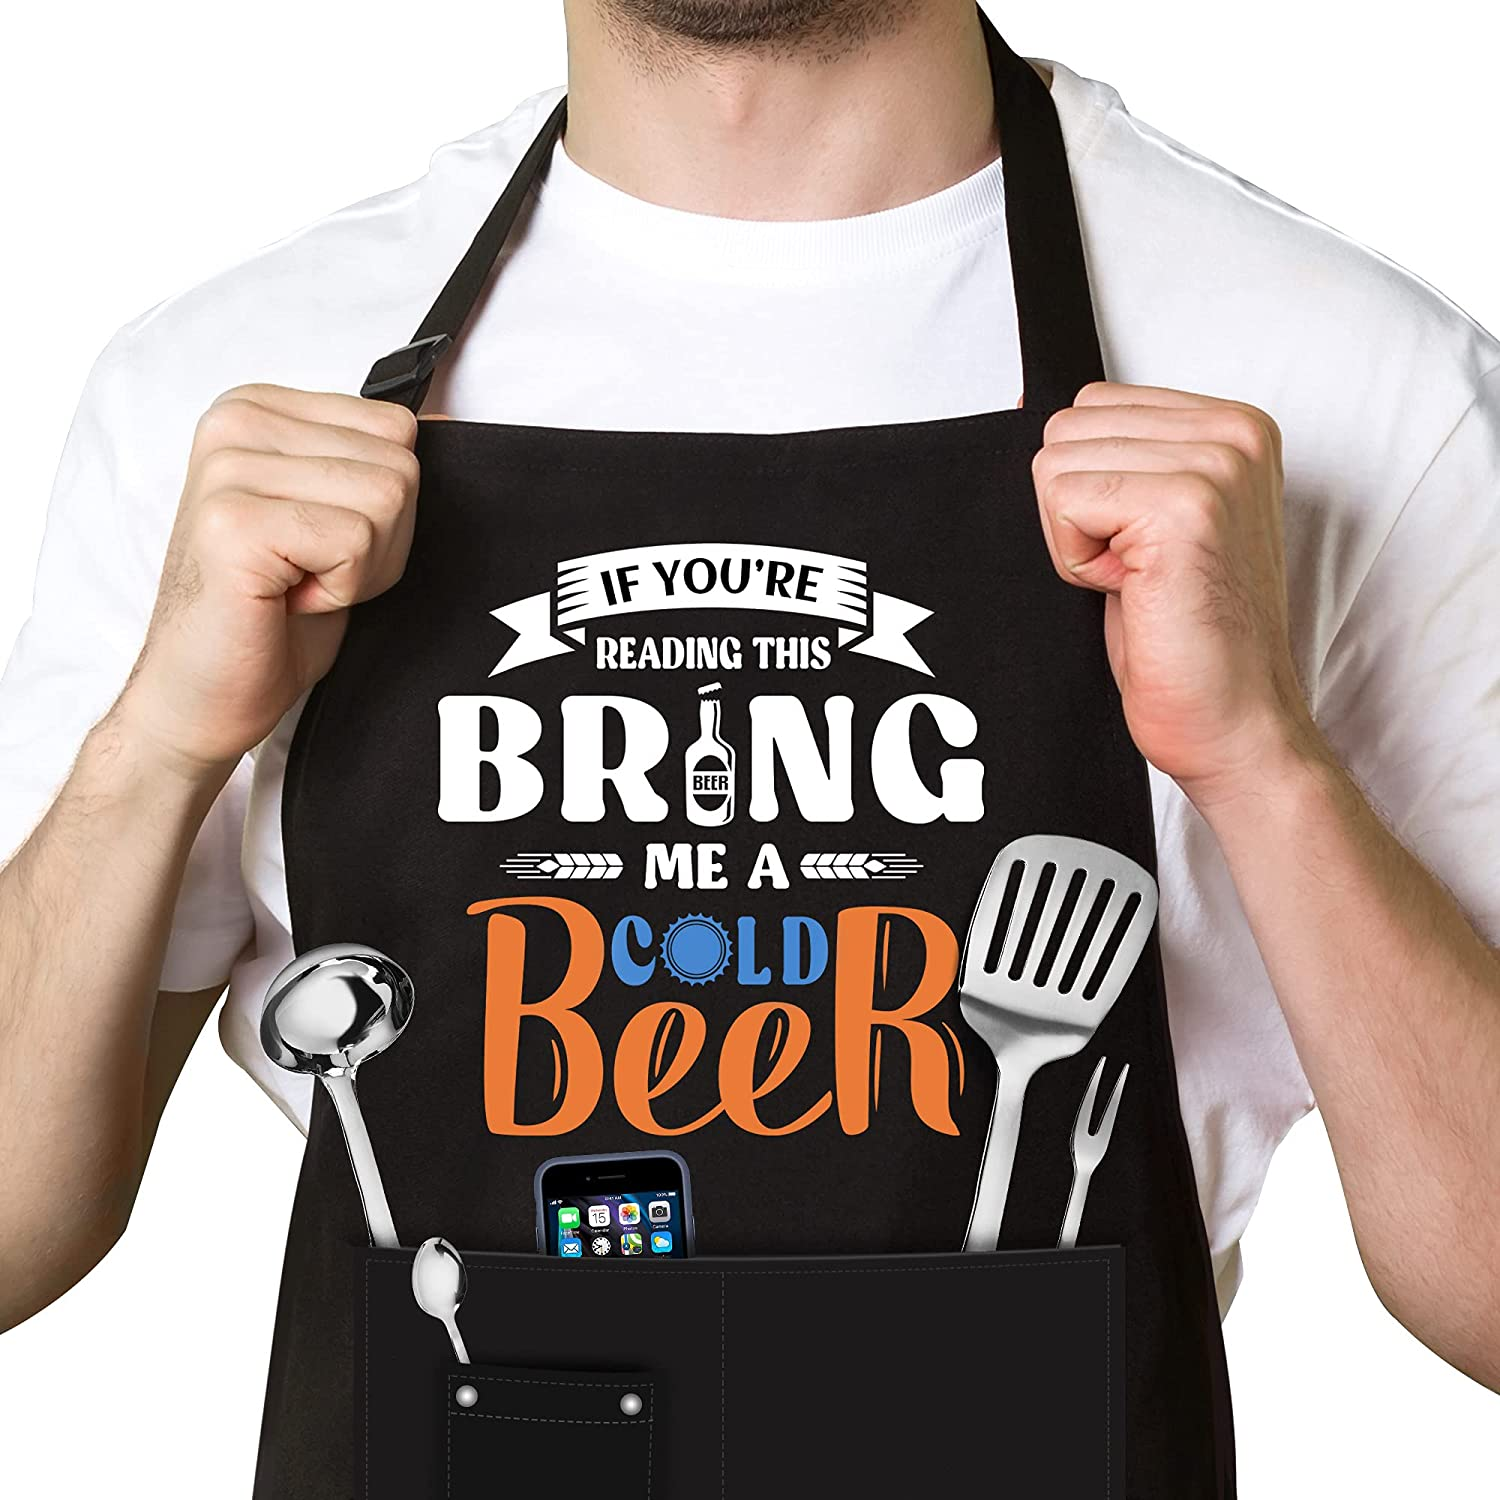 Funny Apron for Men, Personalized Birthday Gifts, Gift for Him from Women, Black Grill Apron for Husband, Dad, Boyfriend, Fiance or any Friend, Grill Cooking BBQ Kitchen Chef Apron with 3 Pockets